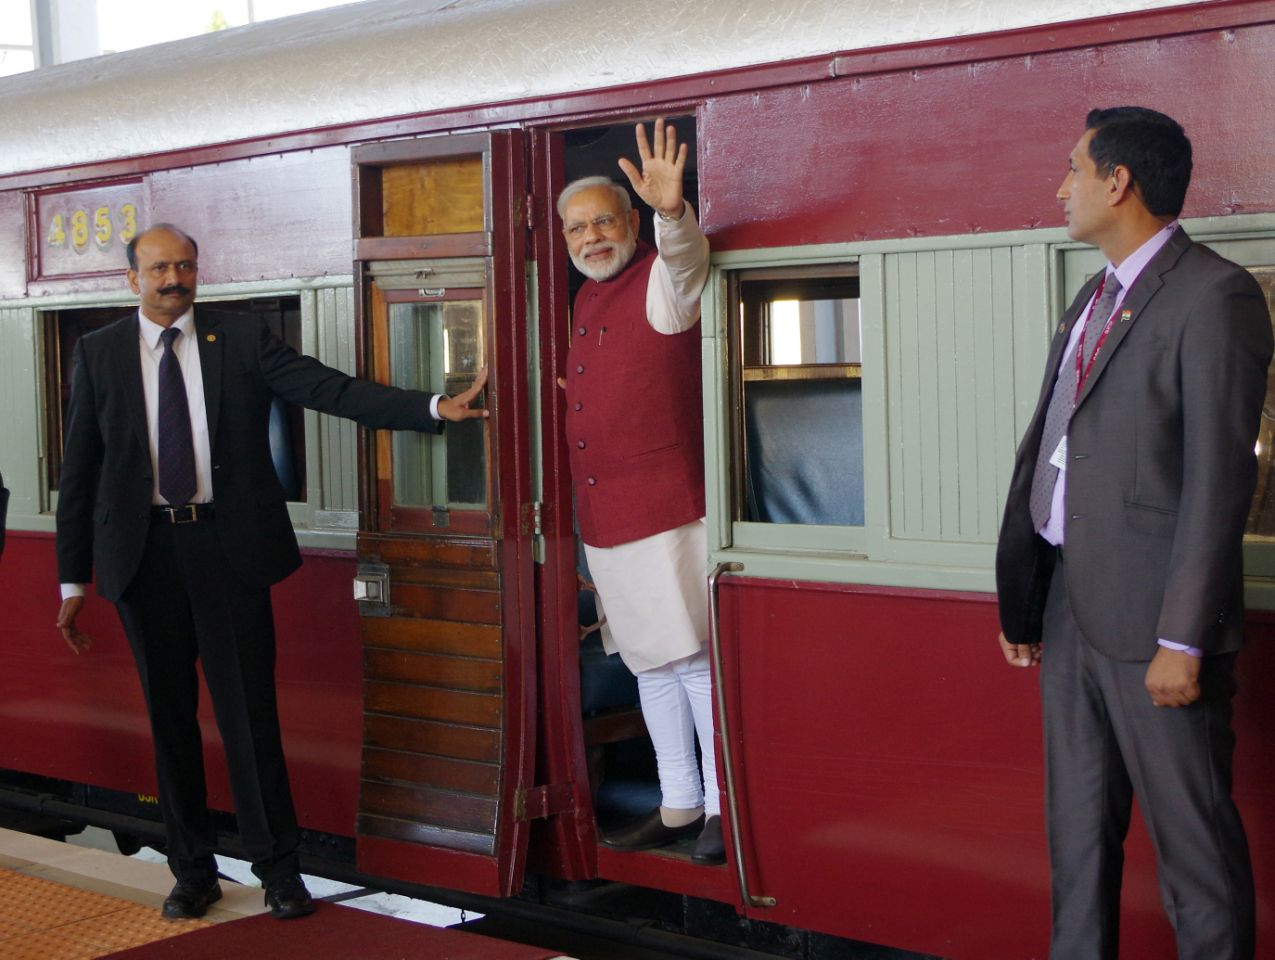 Indian Prime Minister Narendra Modi, waves from a train carriage at Pentrich Railway station in Pietermaritzburg, South Africa, Saturday July 9, 2016. Narendra Modi is taking the same historic train trip that Mahatma Gandhi took in 1893 when he was thrown off the train because of his race. Modi is on a four nation trip to Africa.